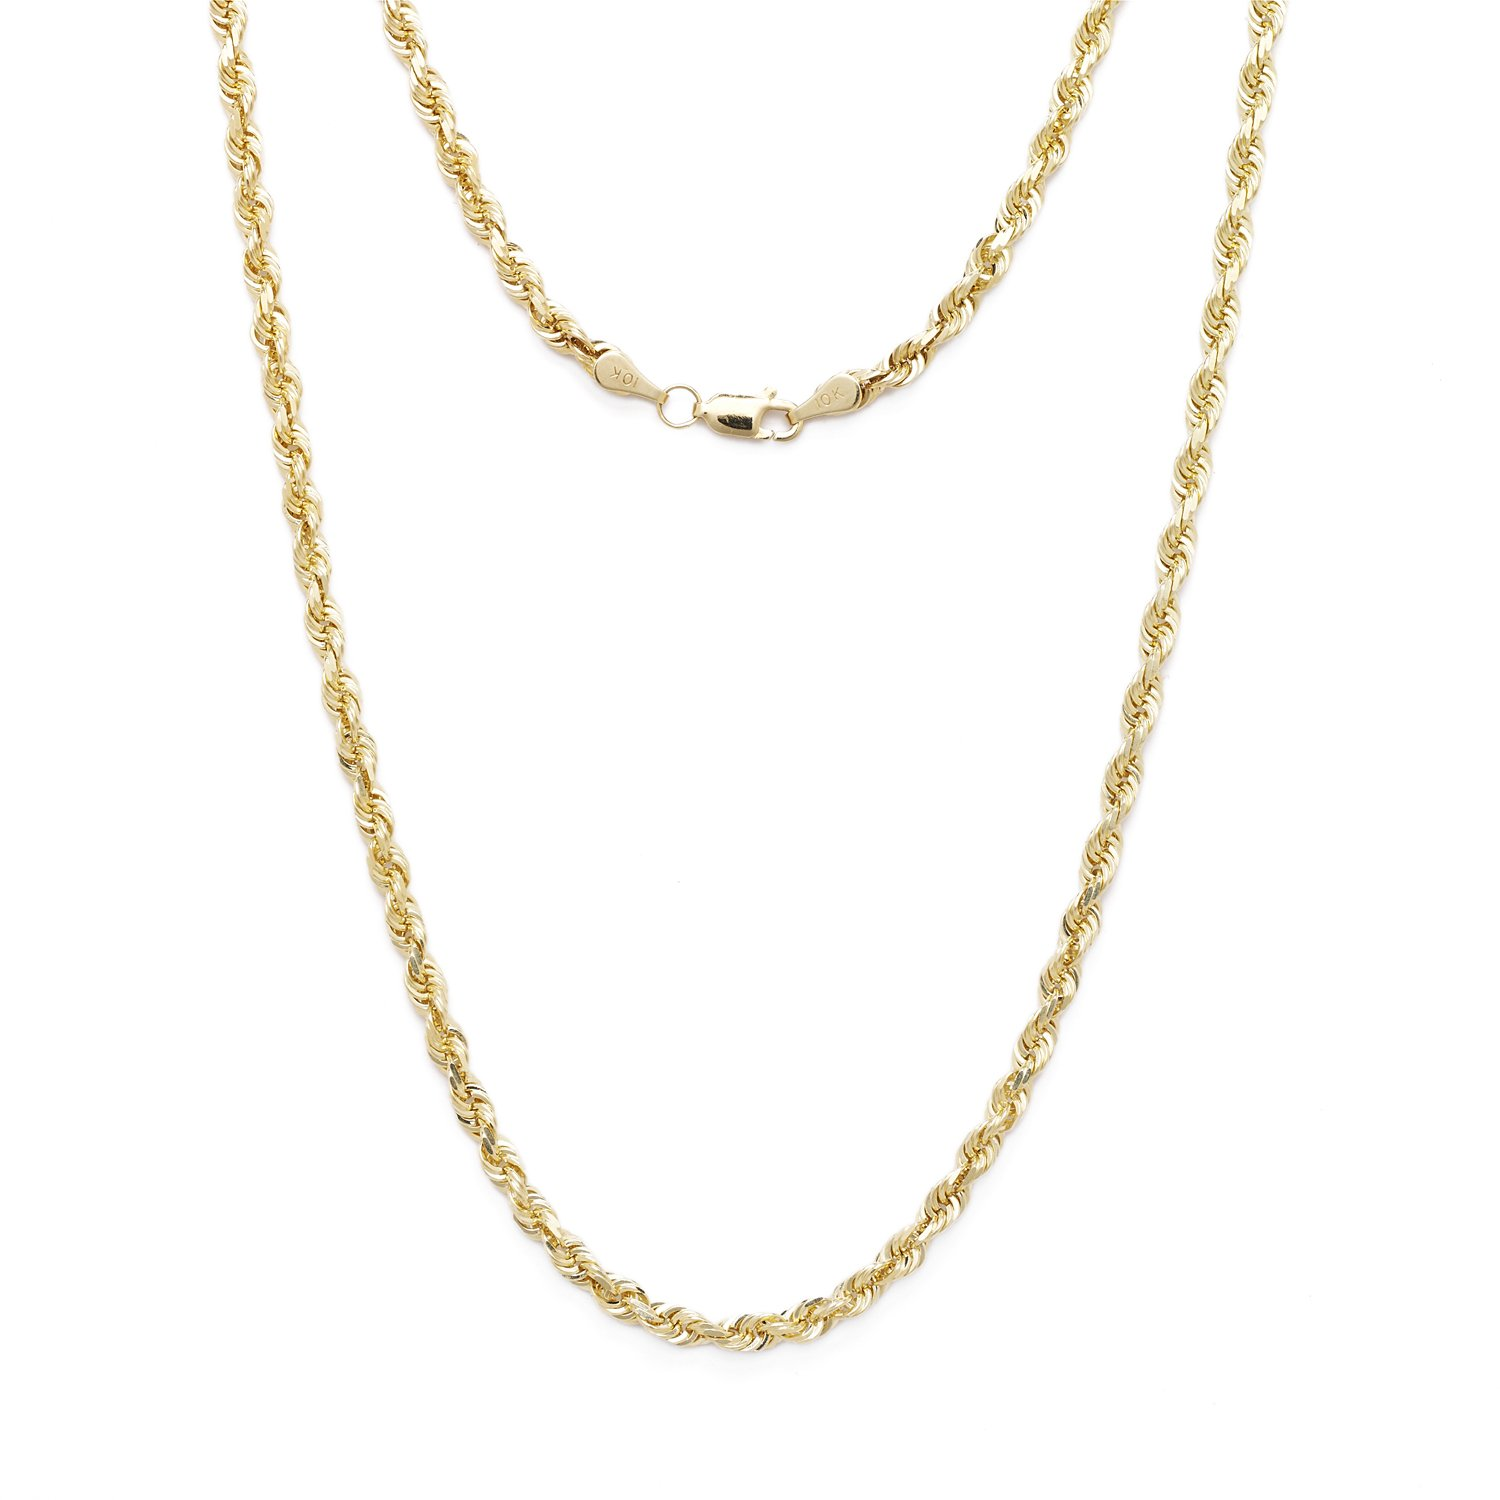 26 Inch 10k Yellow Gold Solid Diamond Cut Rope Chain Necklace 2.5mm